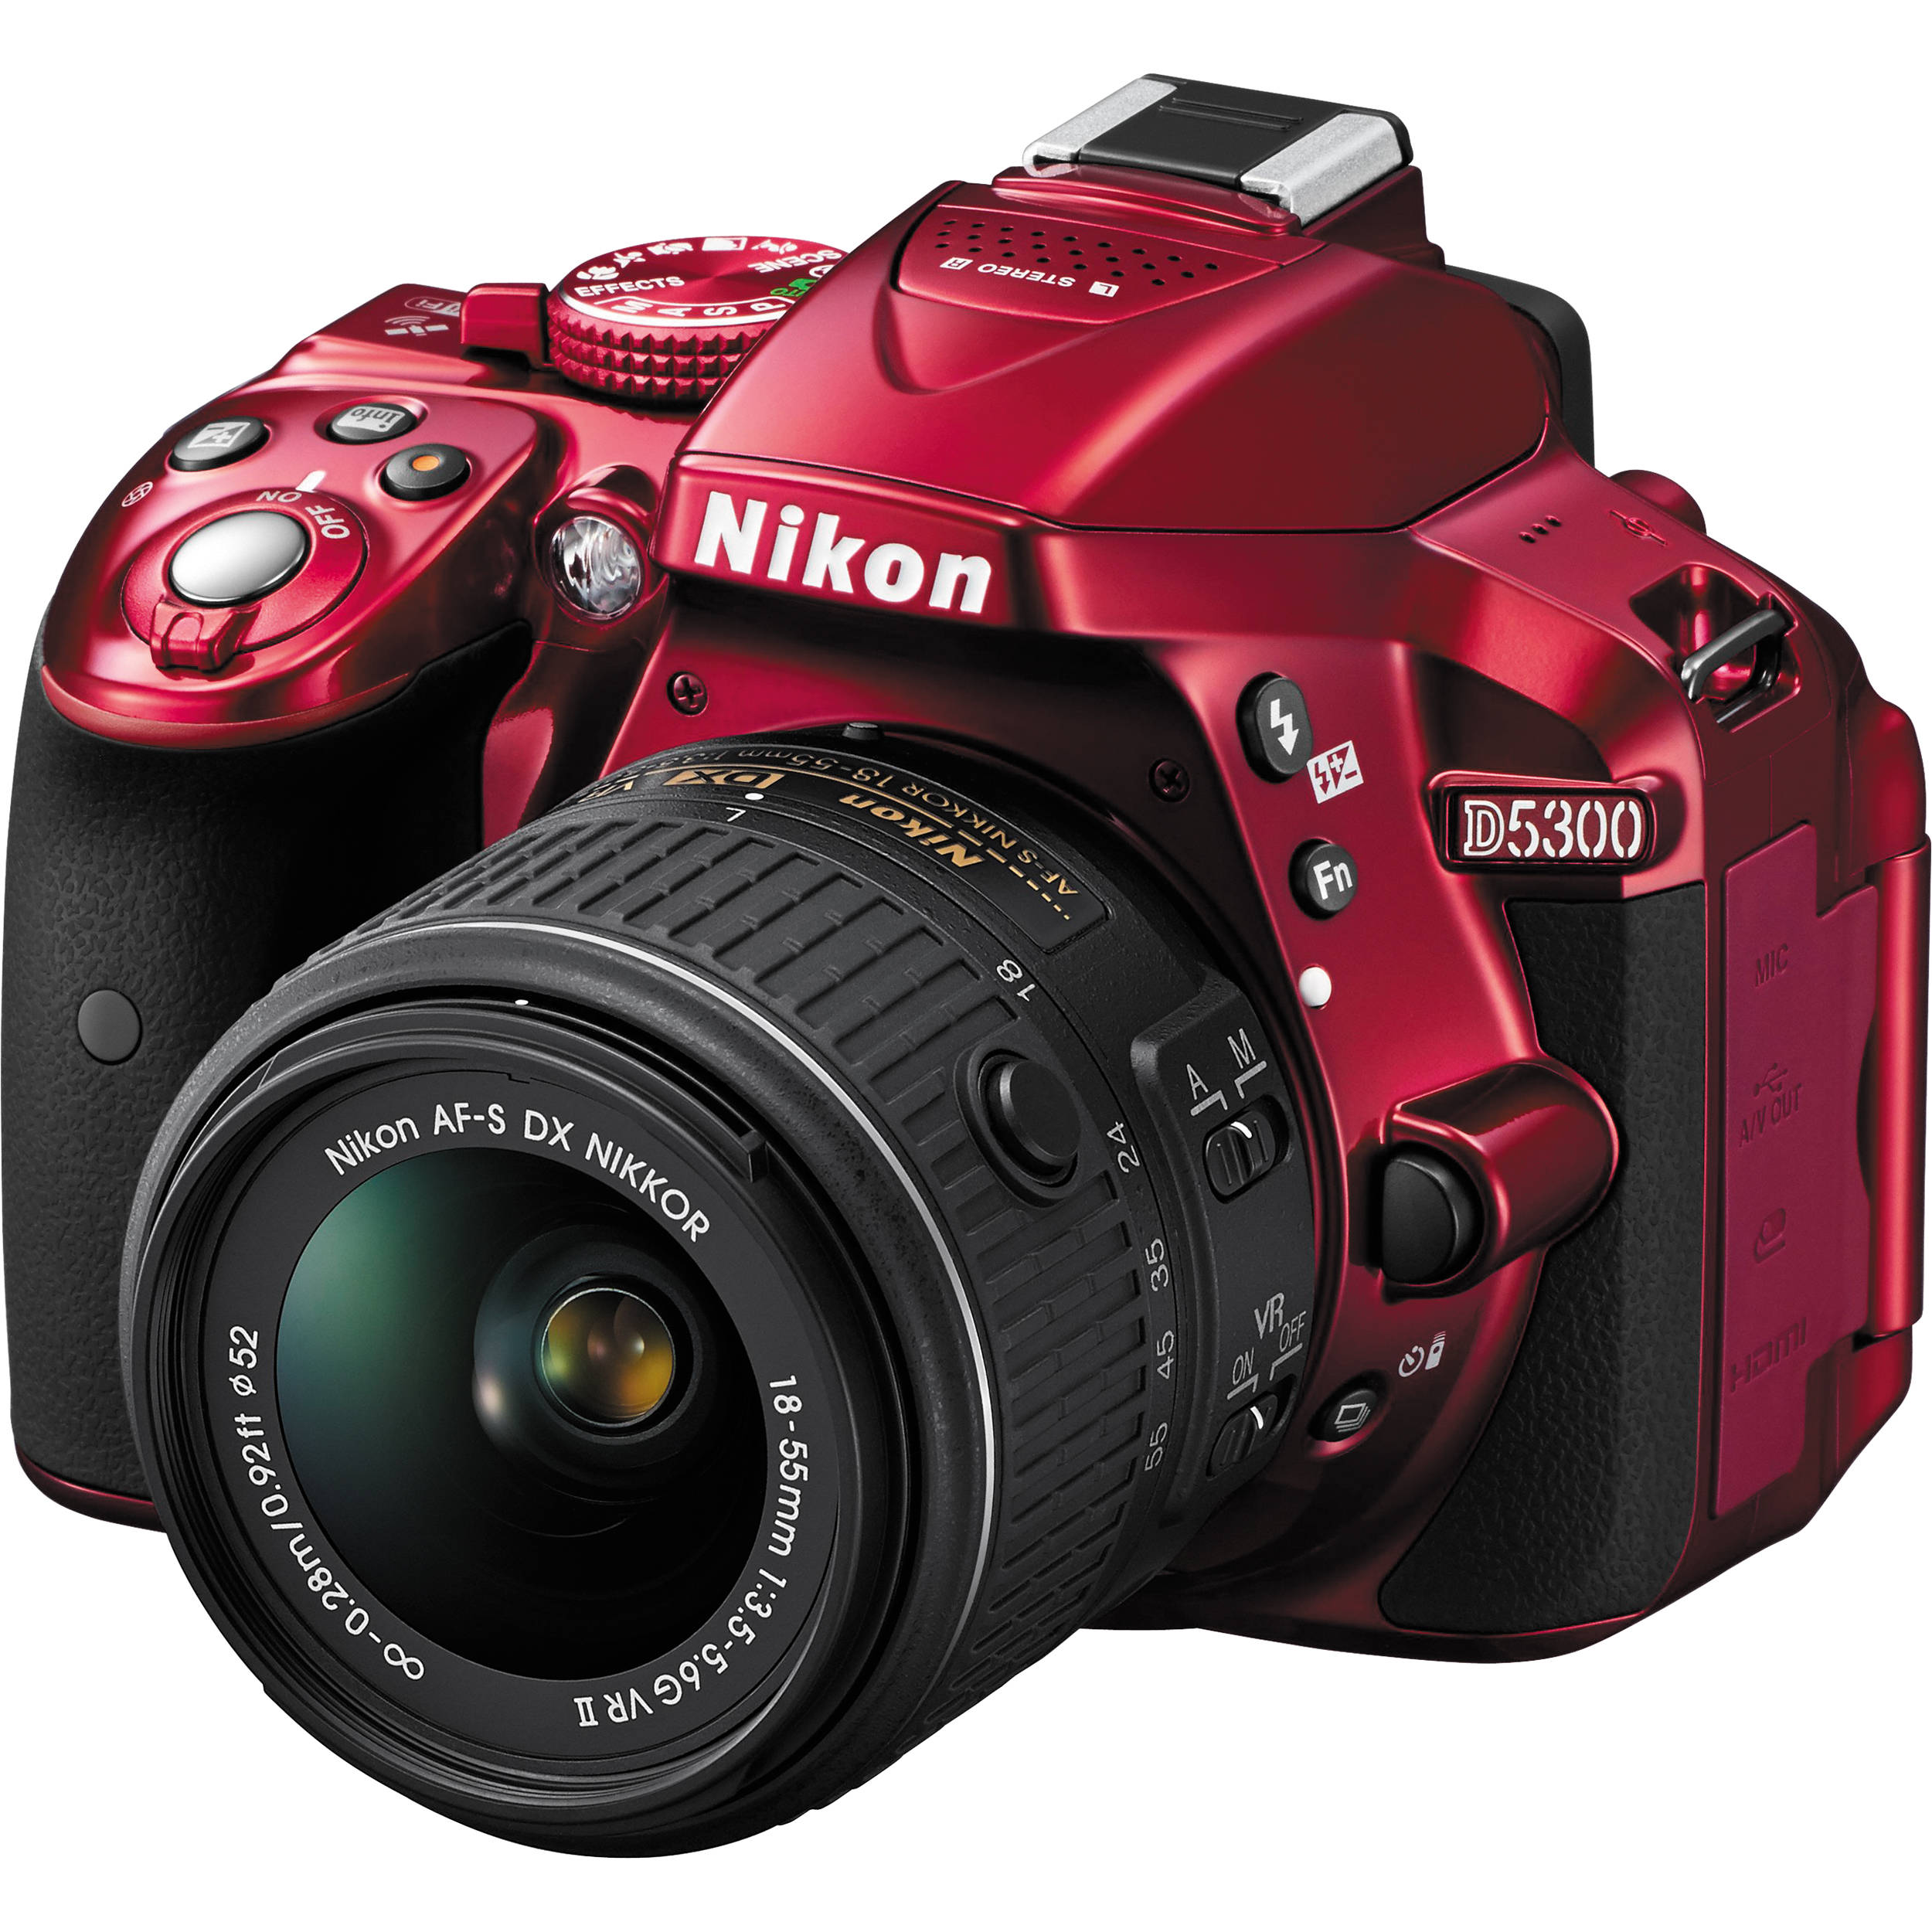 Camera Best Deals On Dslr Cameras In Usa nikon dslr cameras photography best digital slr camera reviews d5300 with 18 55mm lens red 1523 bamph